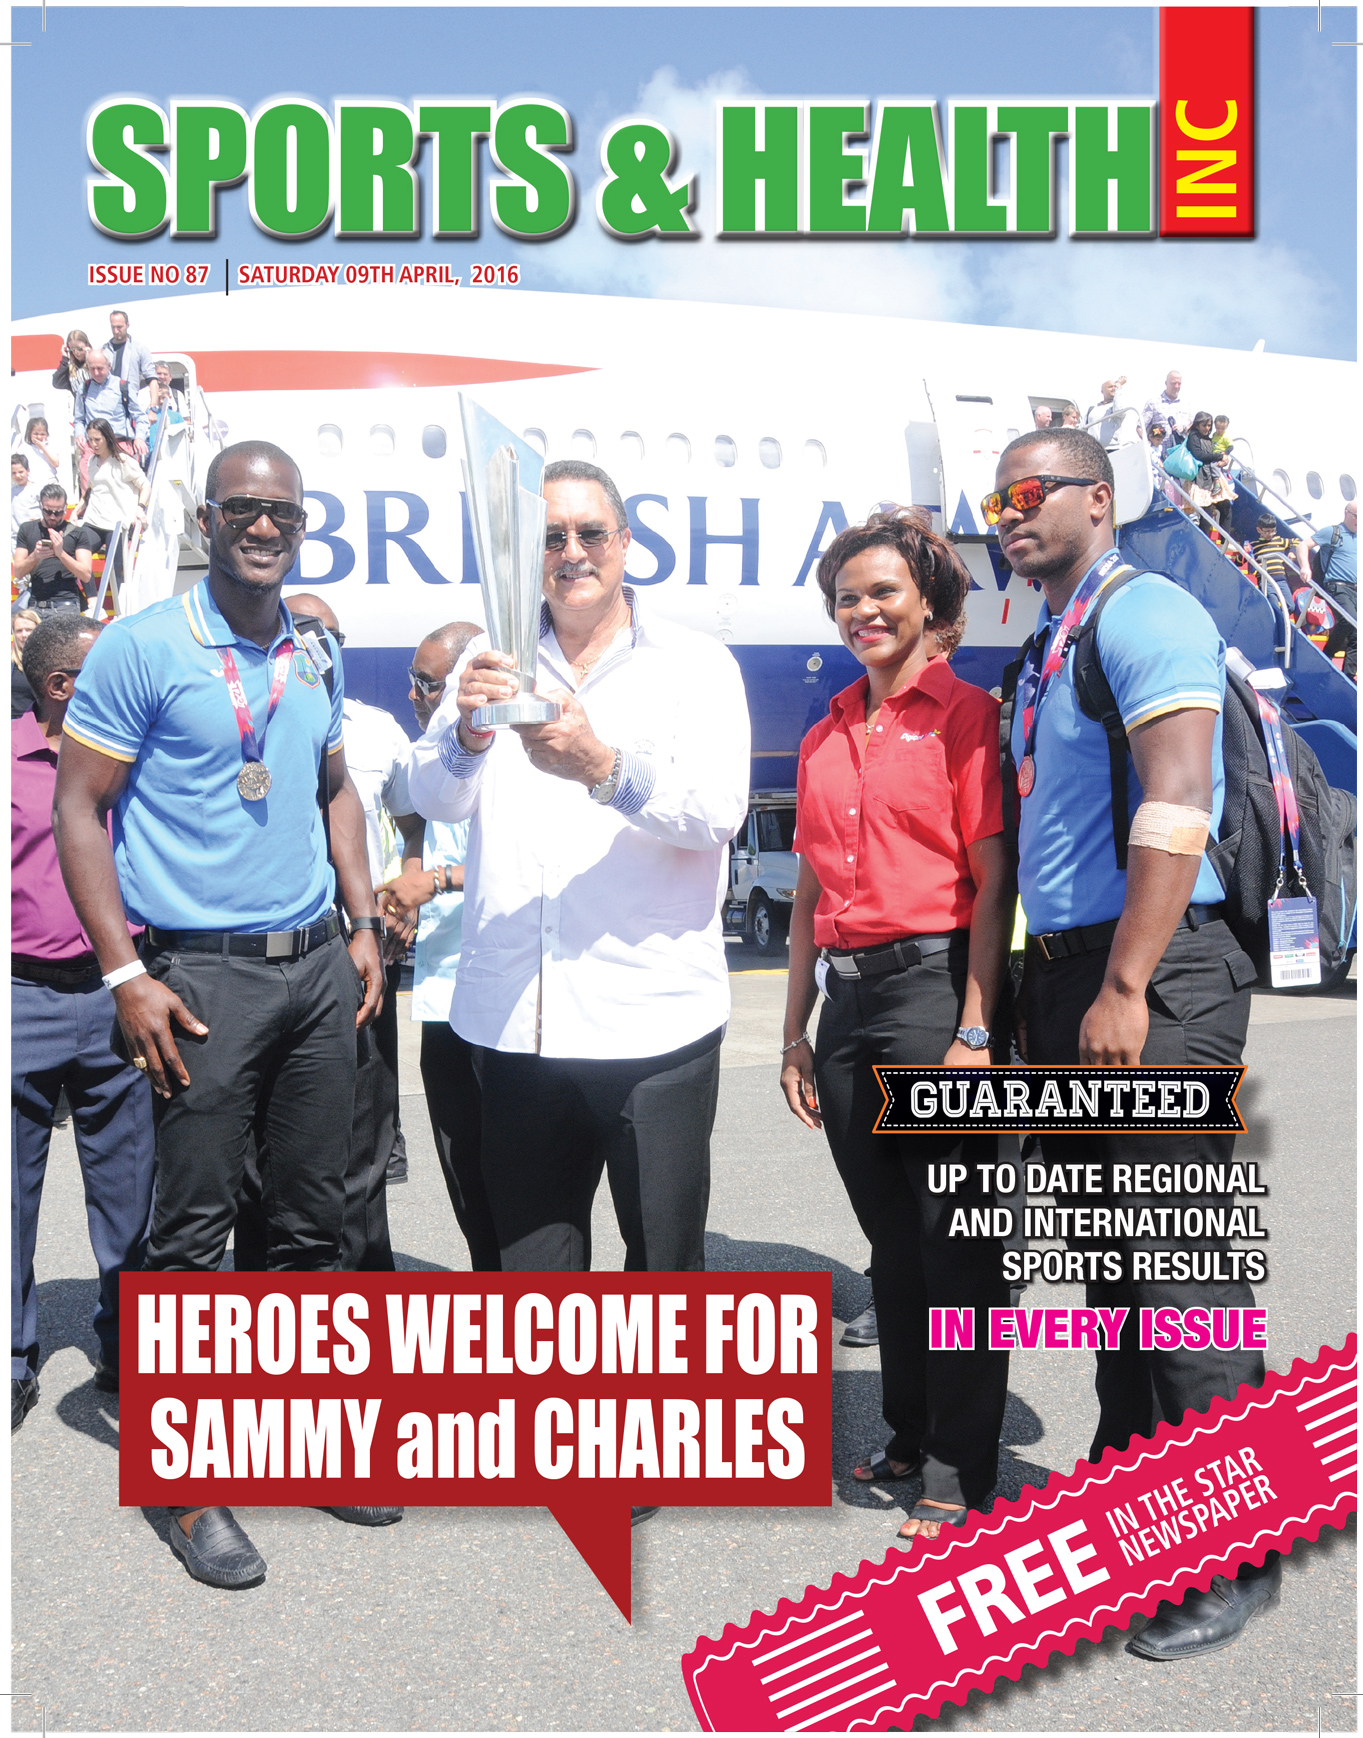 Sports & Health Magazine Inc for Saturday April 9th, 2016 ~ Issue no. 87